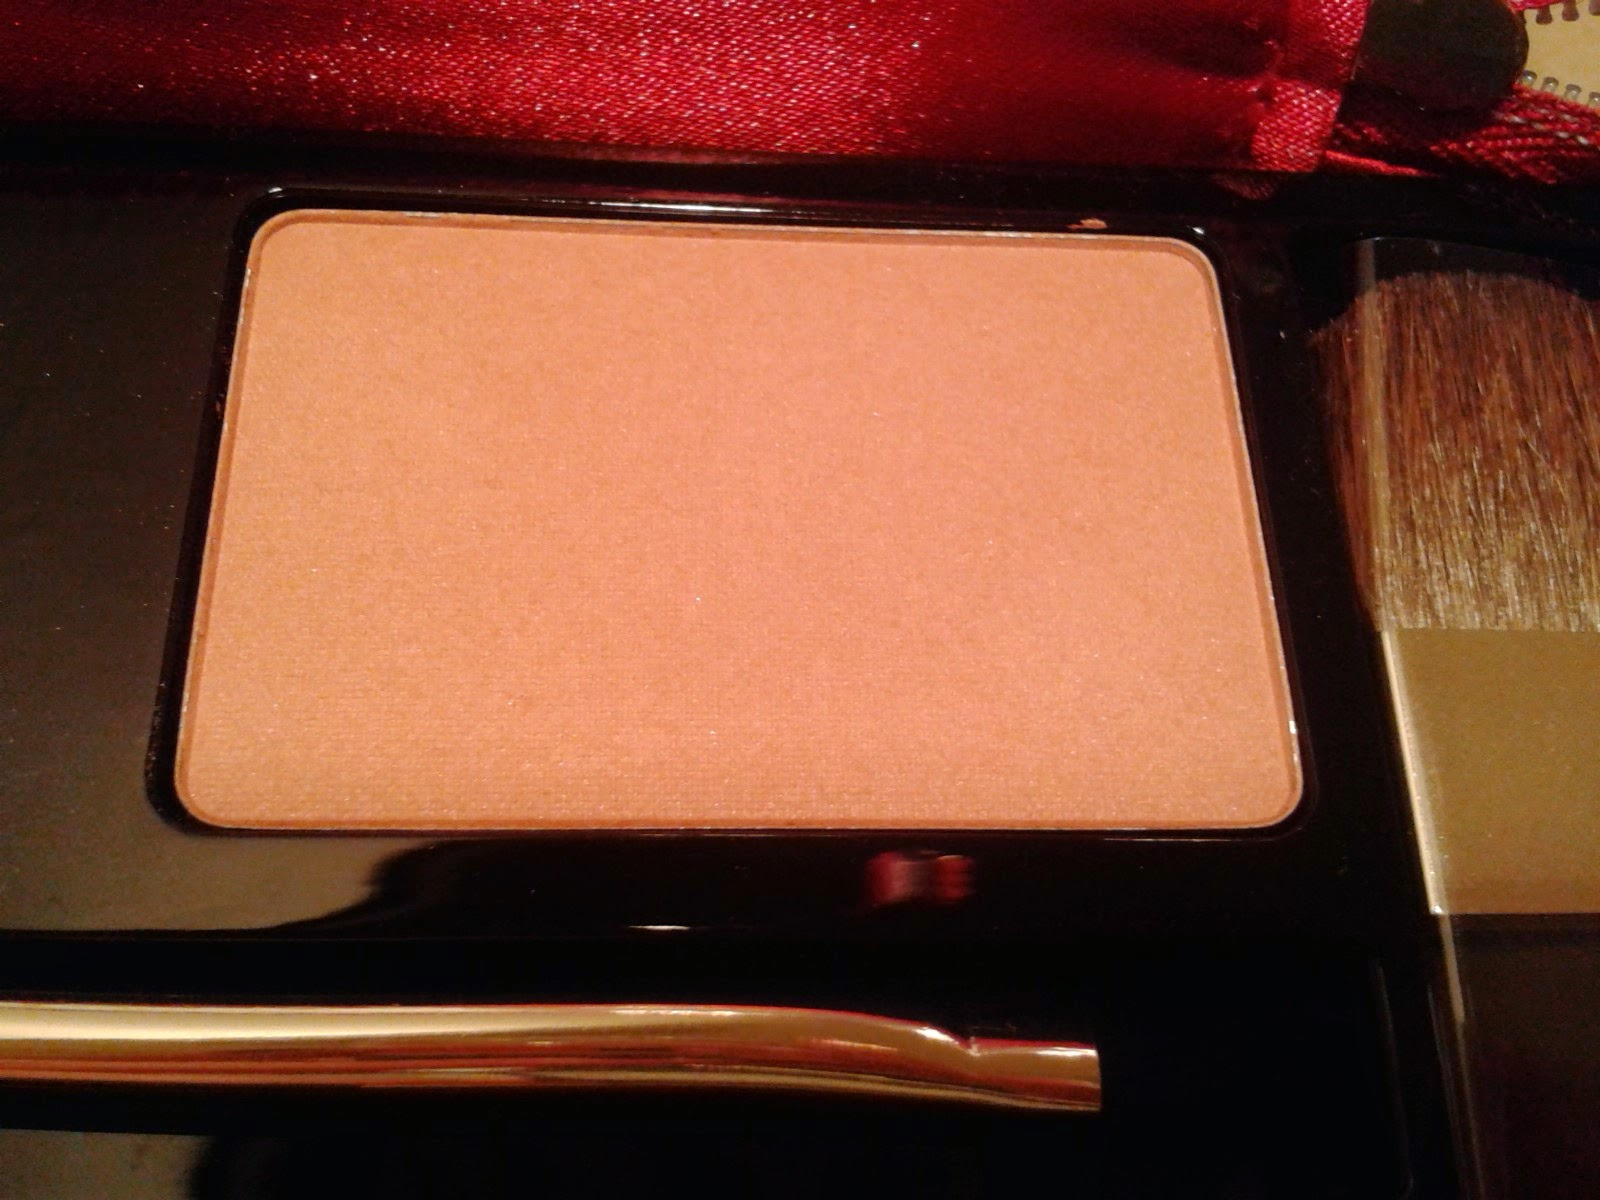 Palette maquillage natale 2014 il rosso secondo clarins - Palette maquillage aimantee ...